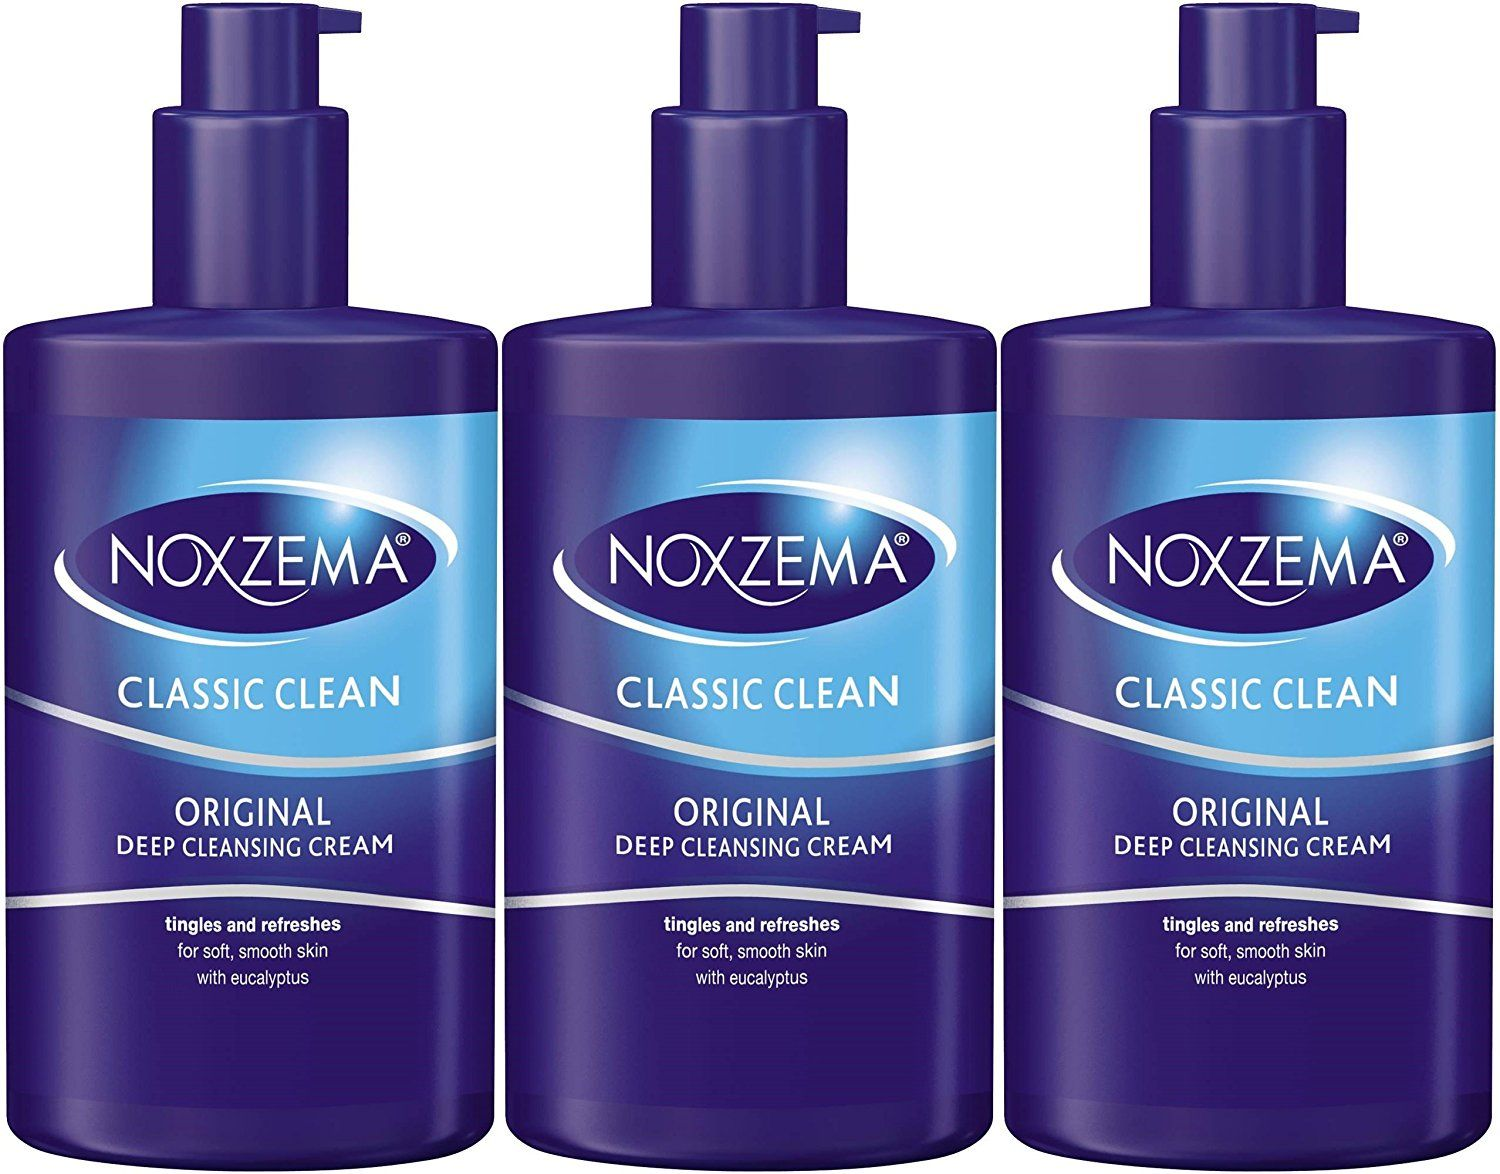 Noxzema Classic Clean Original Deep Cleansing Cream 8oz Pump 3 Pack Cleanser This Is An Amazon Affiliate Link Read More Reviews Of The Product By Visiting